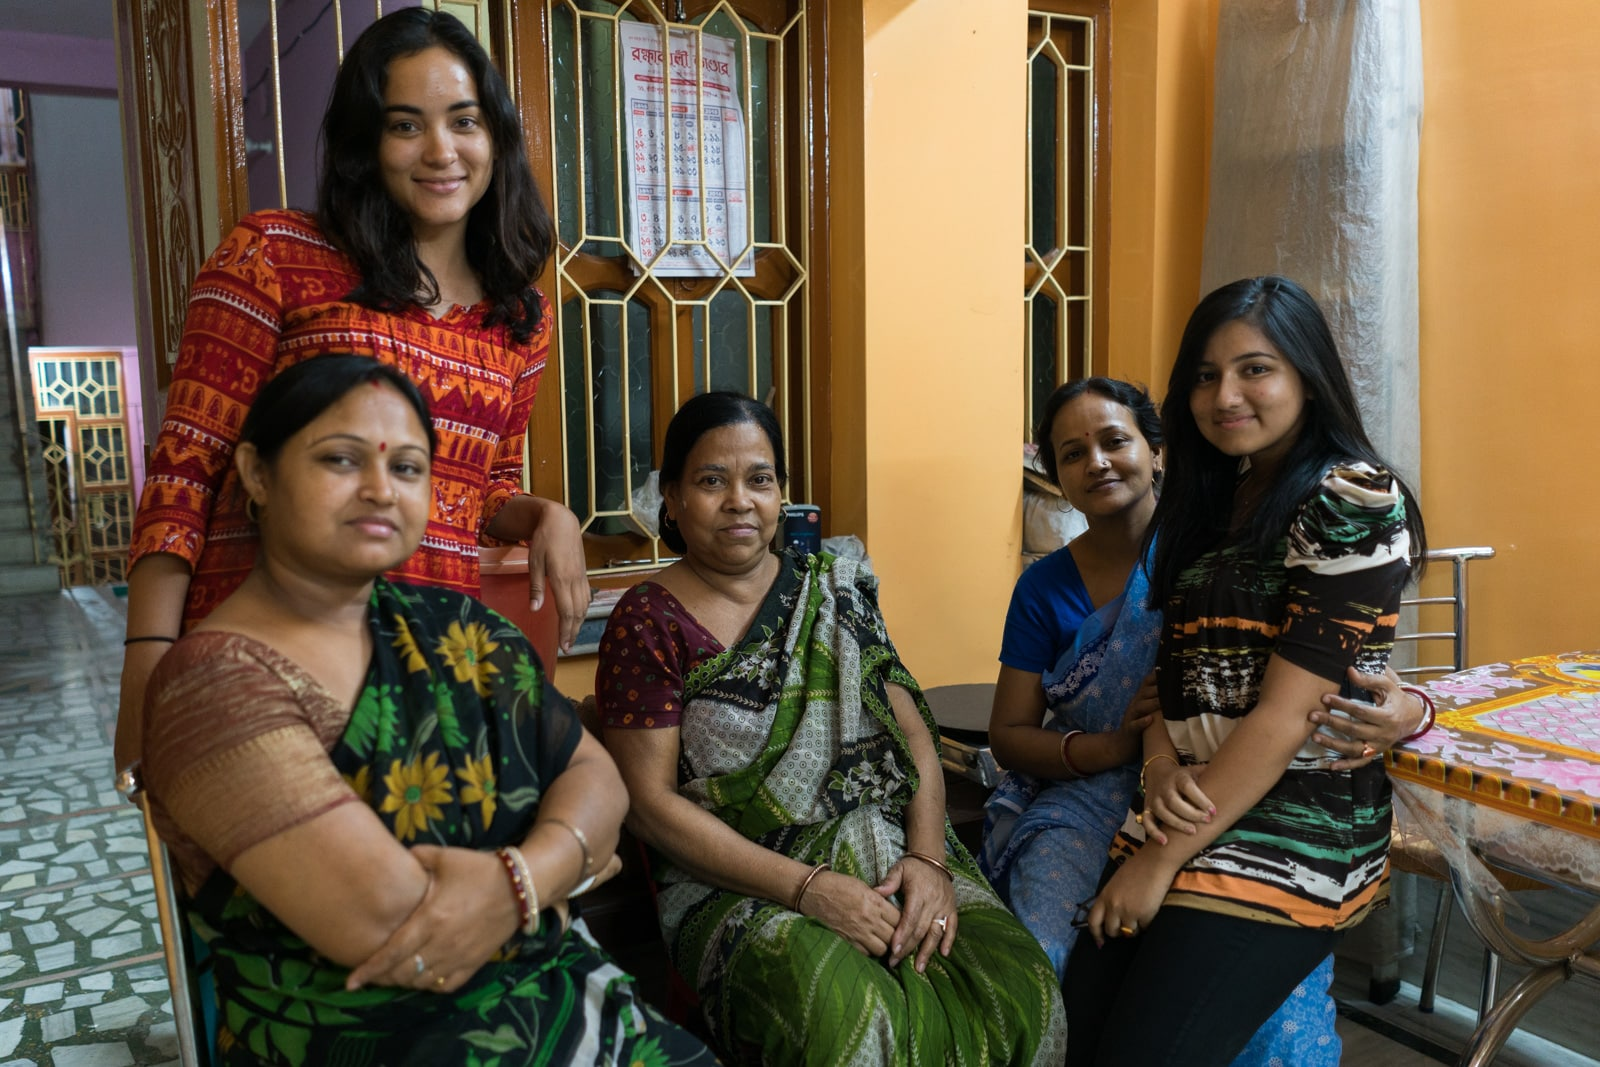 Alex with a family of women in a home in Kolkata, India